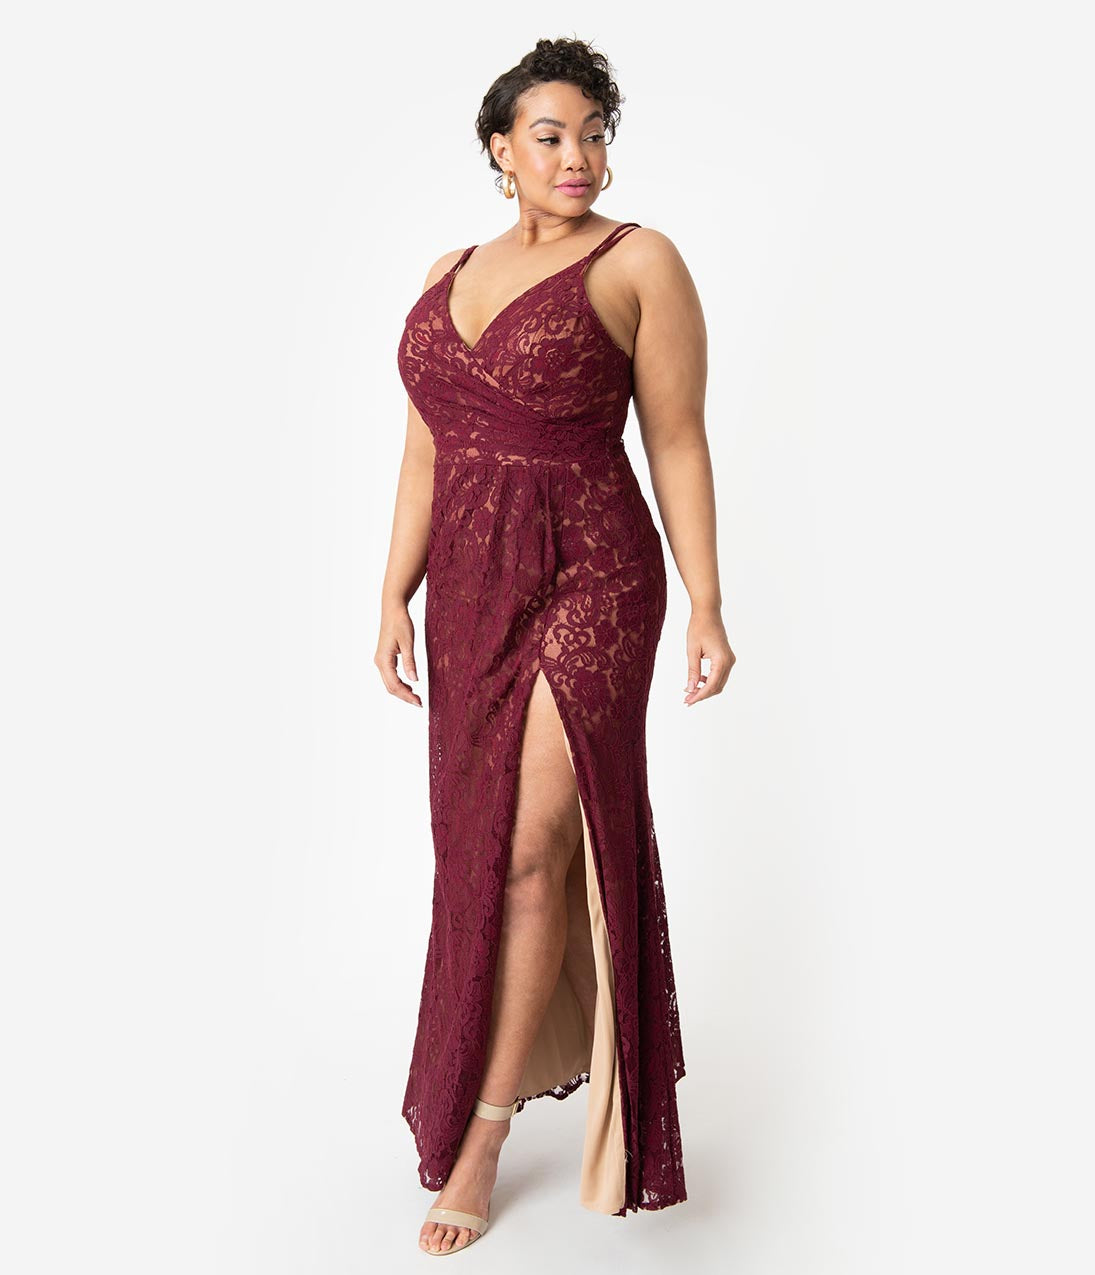 Vintage Evening Dresses and Formal Evening Gowns Burgundy Lace Sexy Sleeveless Side Slit Long Dress $130.00 AT vintagedancer.com